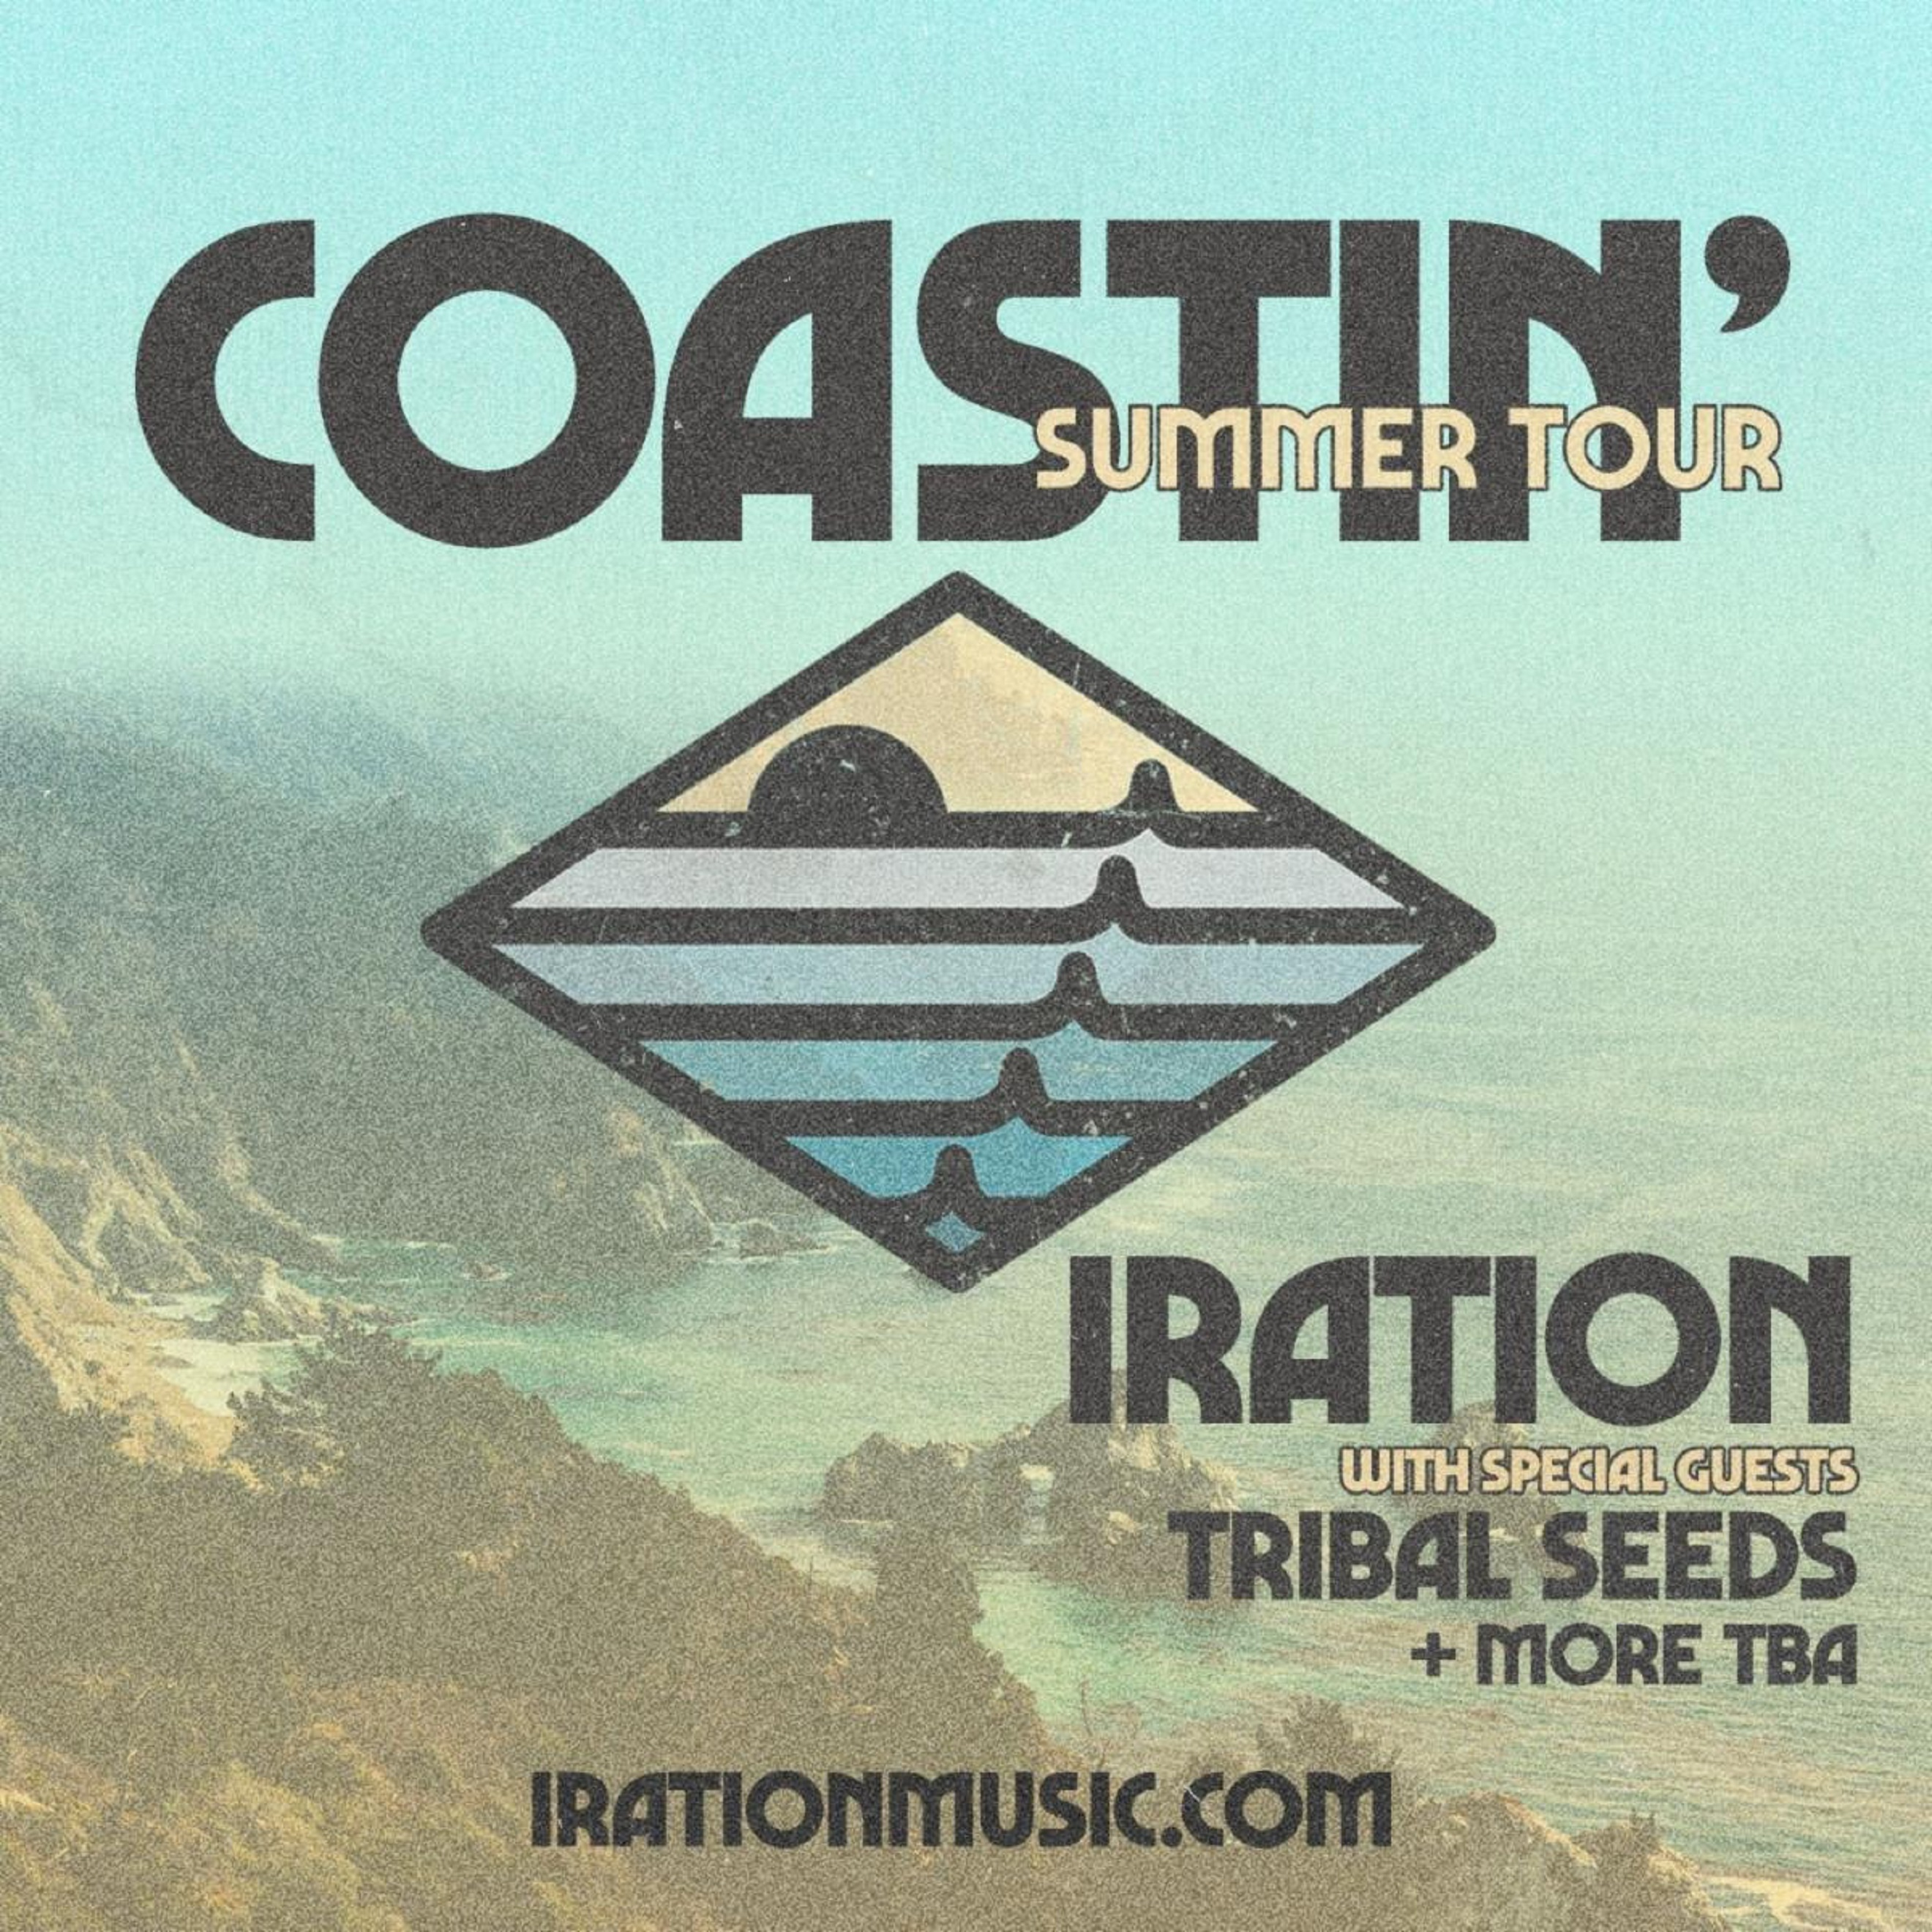 IRATION Announces New Album Coastin' And Summer Headlining Tour